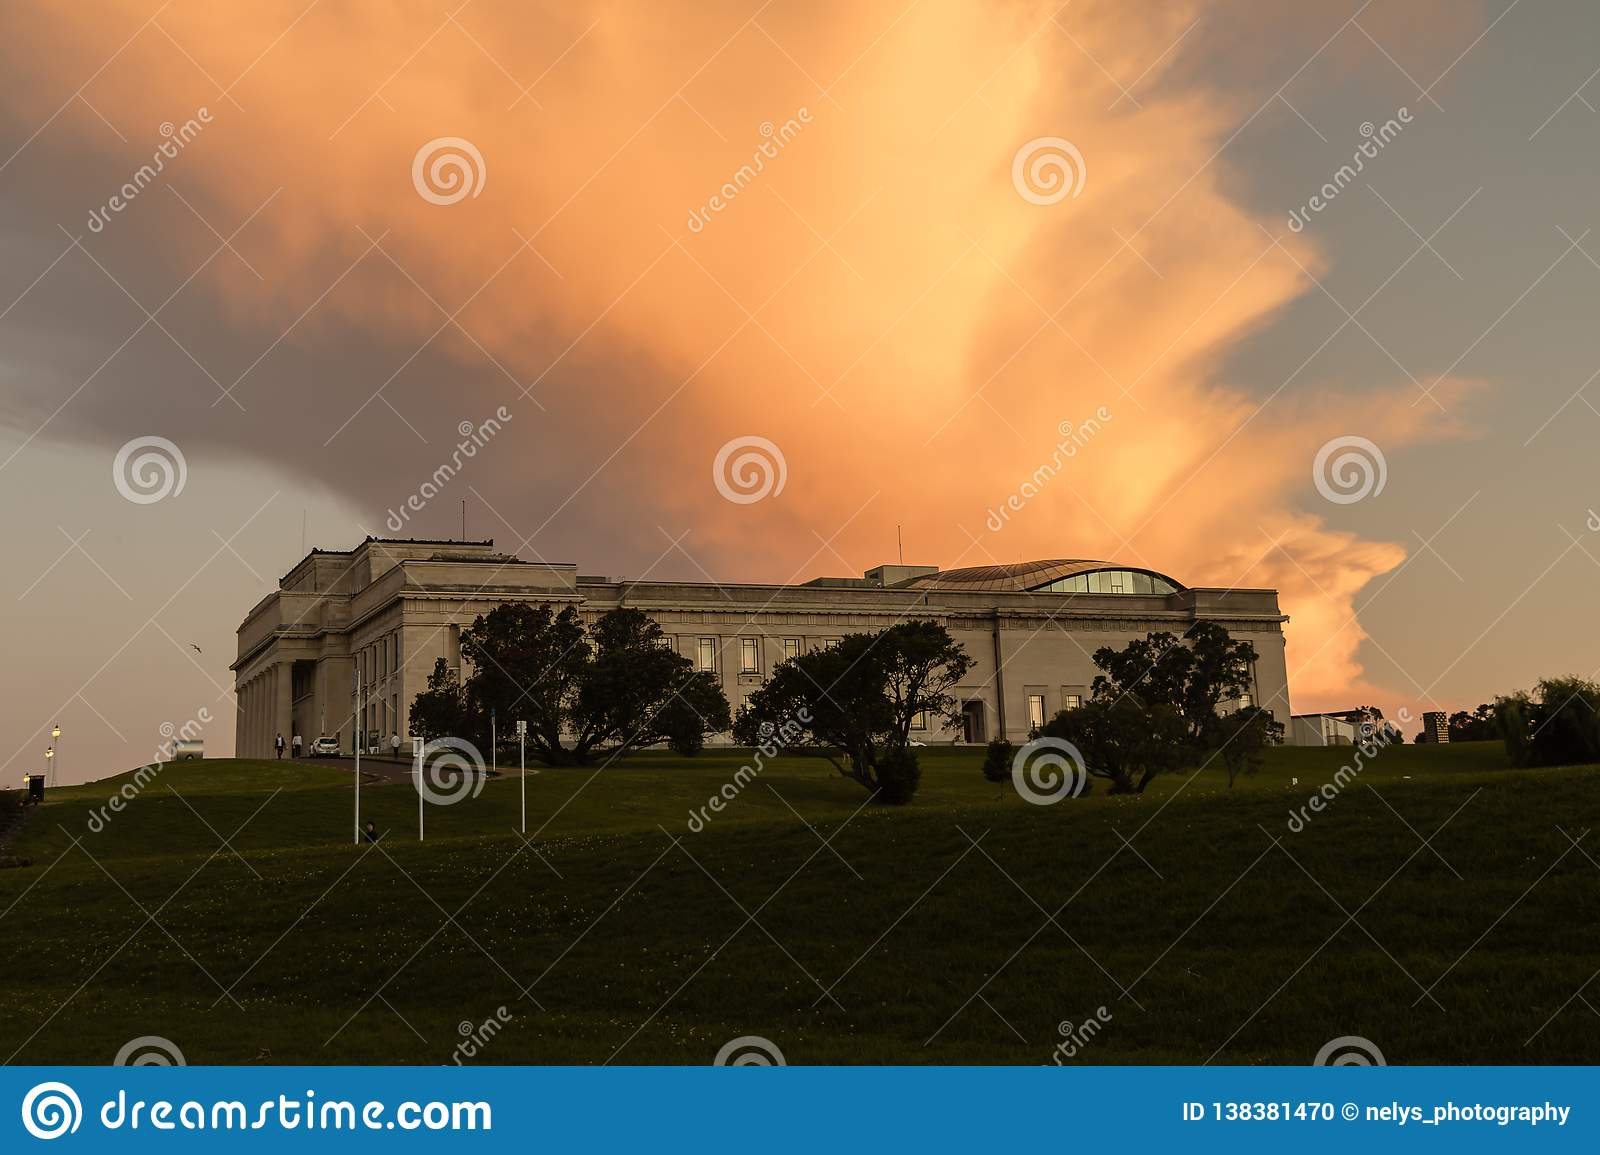 Auckland War Memorial Museum at sunset with orange sky, New Zealand.